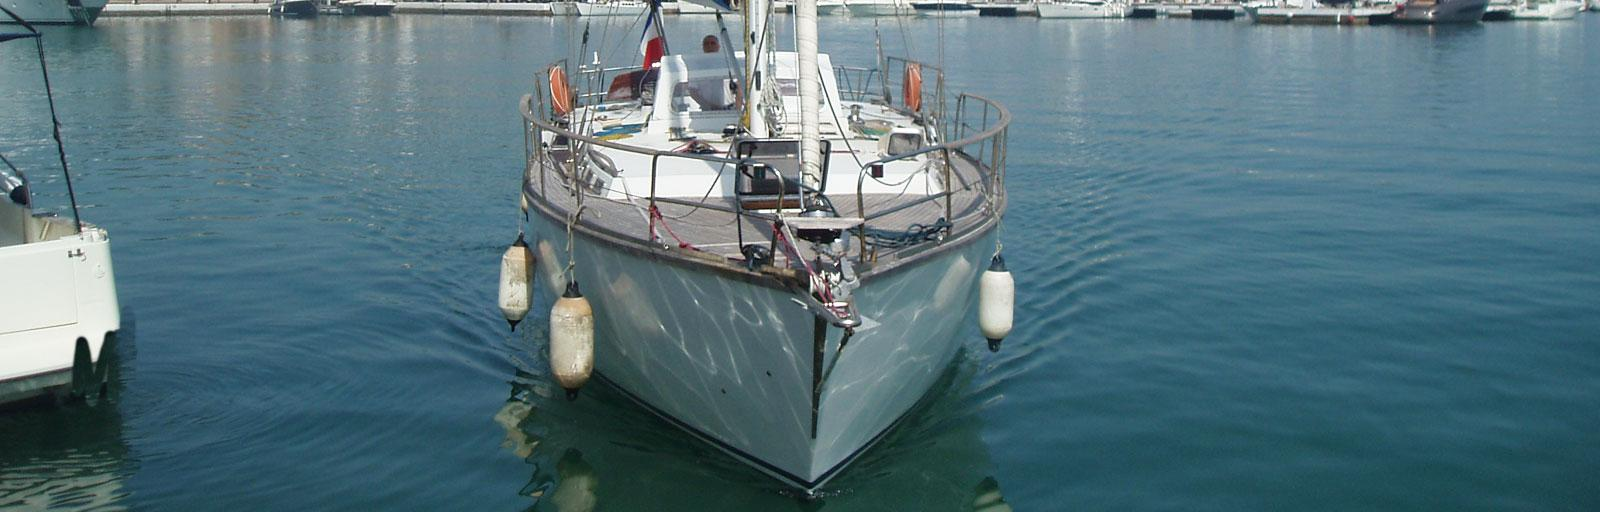 AYC Yachtbrokers - Provins Atou 1400